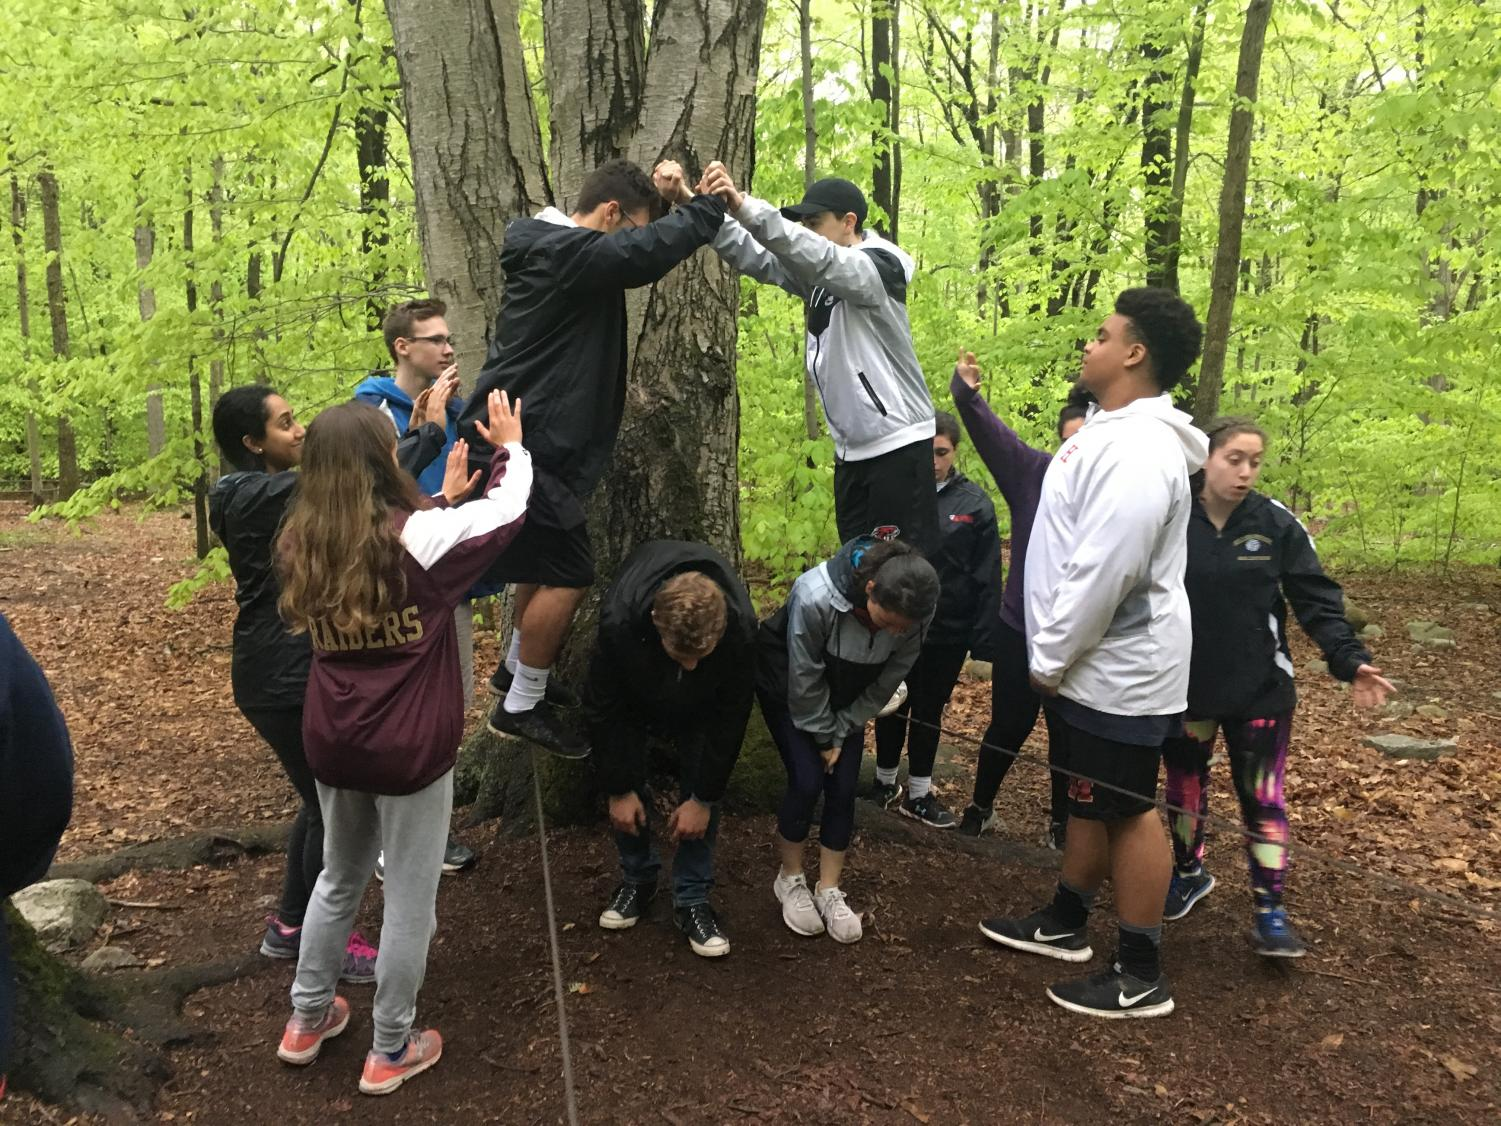 Peer Mentors work together to make their way across cable wires at YMCA Camp Mason in Hardwick, NJ.